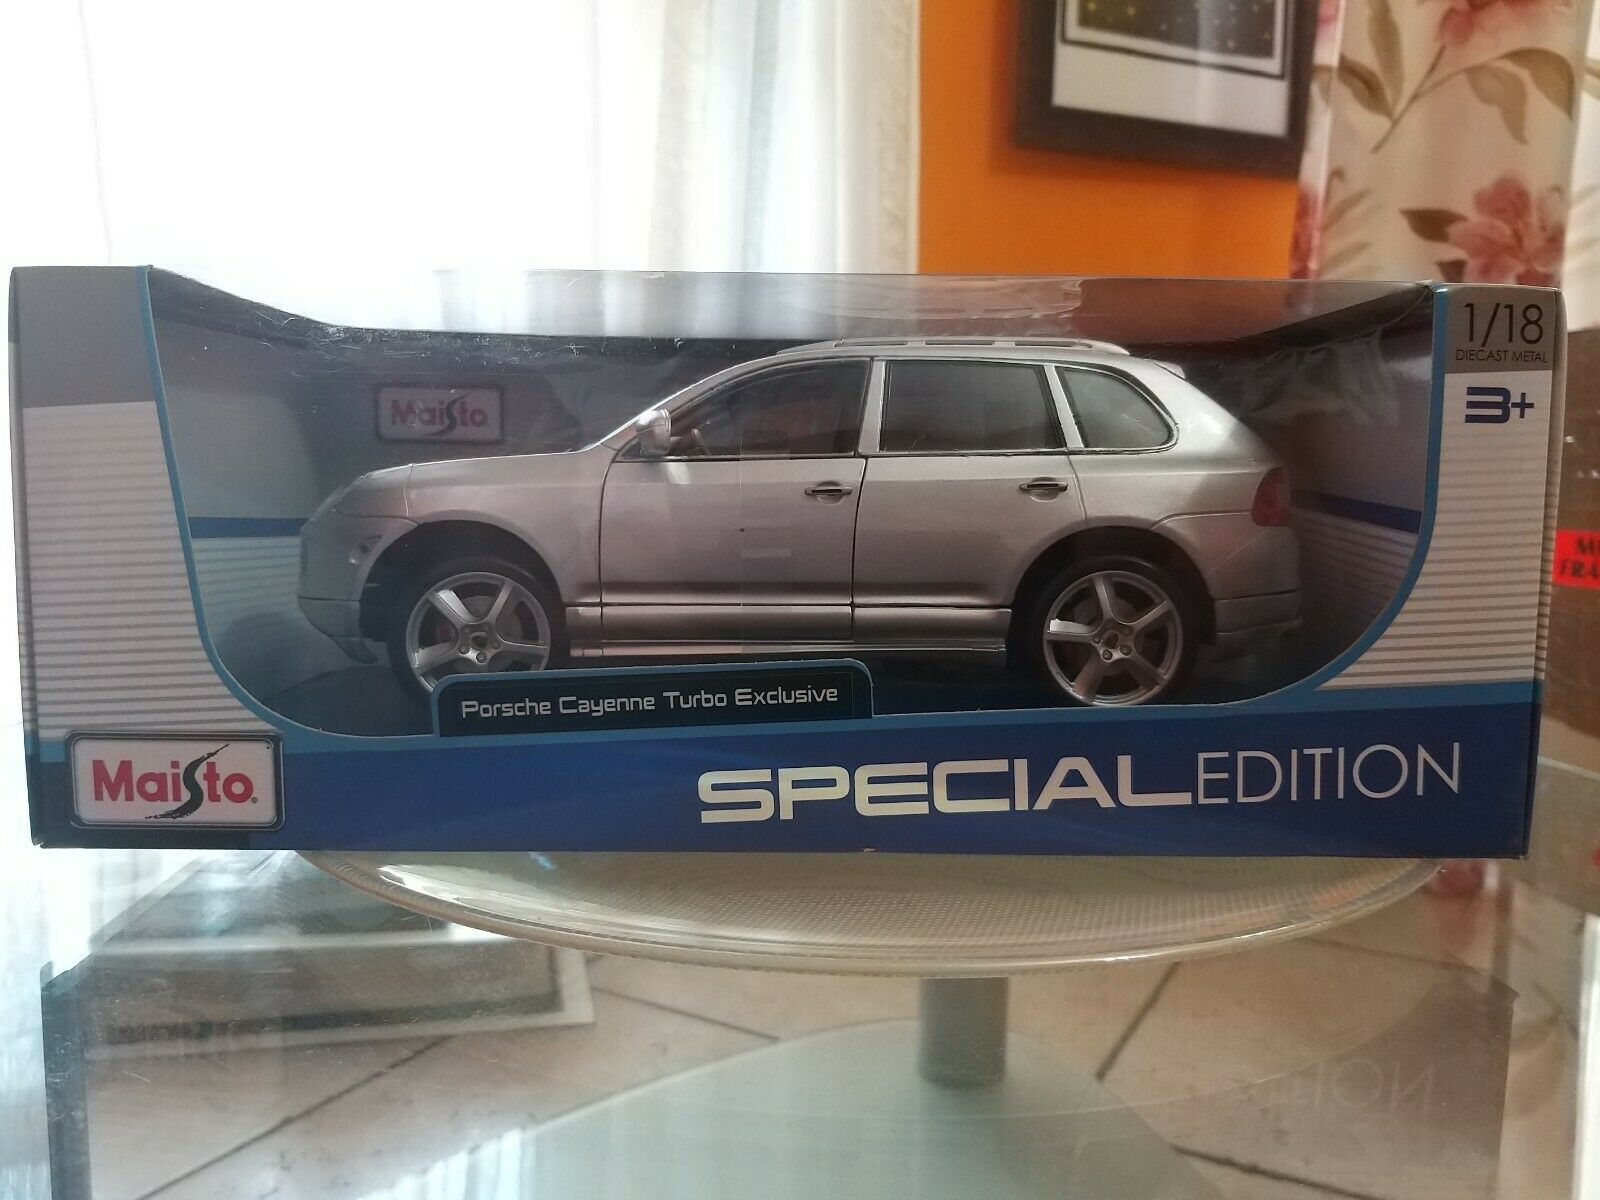 Model Maisto Grey porsce cayenne turbo Exclusive Special Edition 1 18